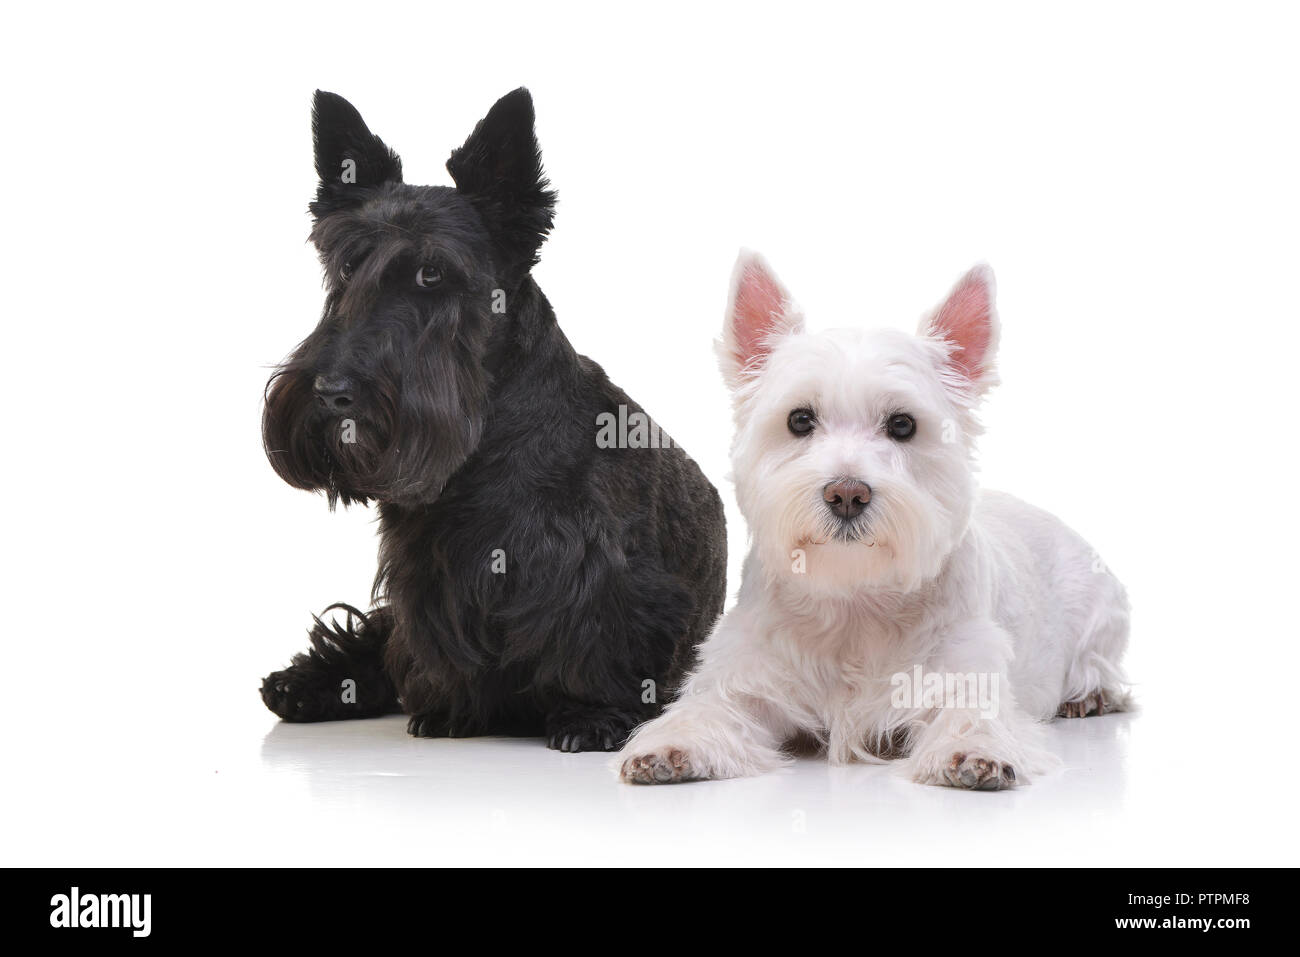 West Highland Black Terrier High Resolution Stock Photography And Images Alamy